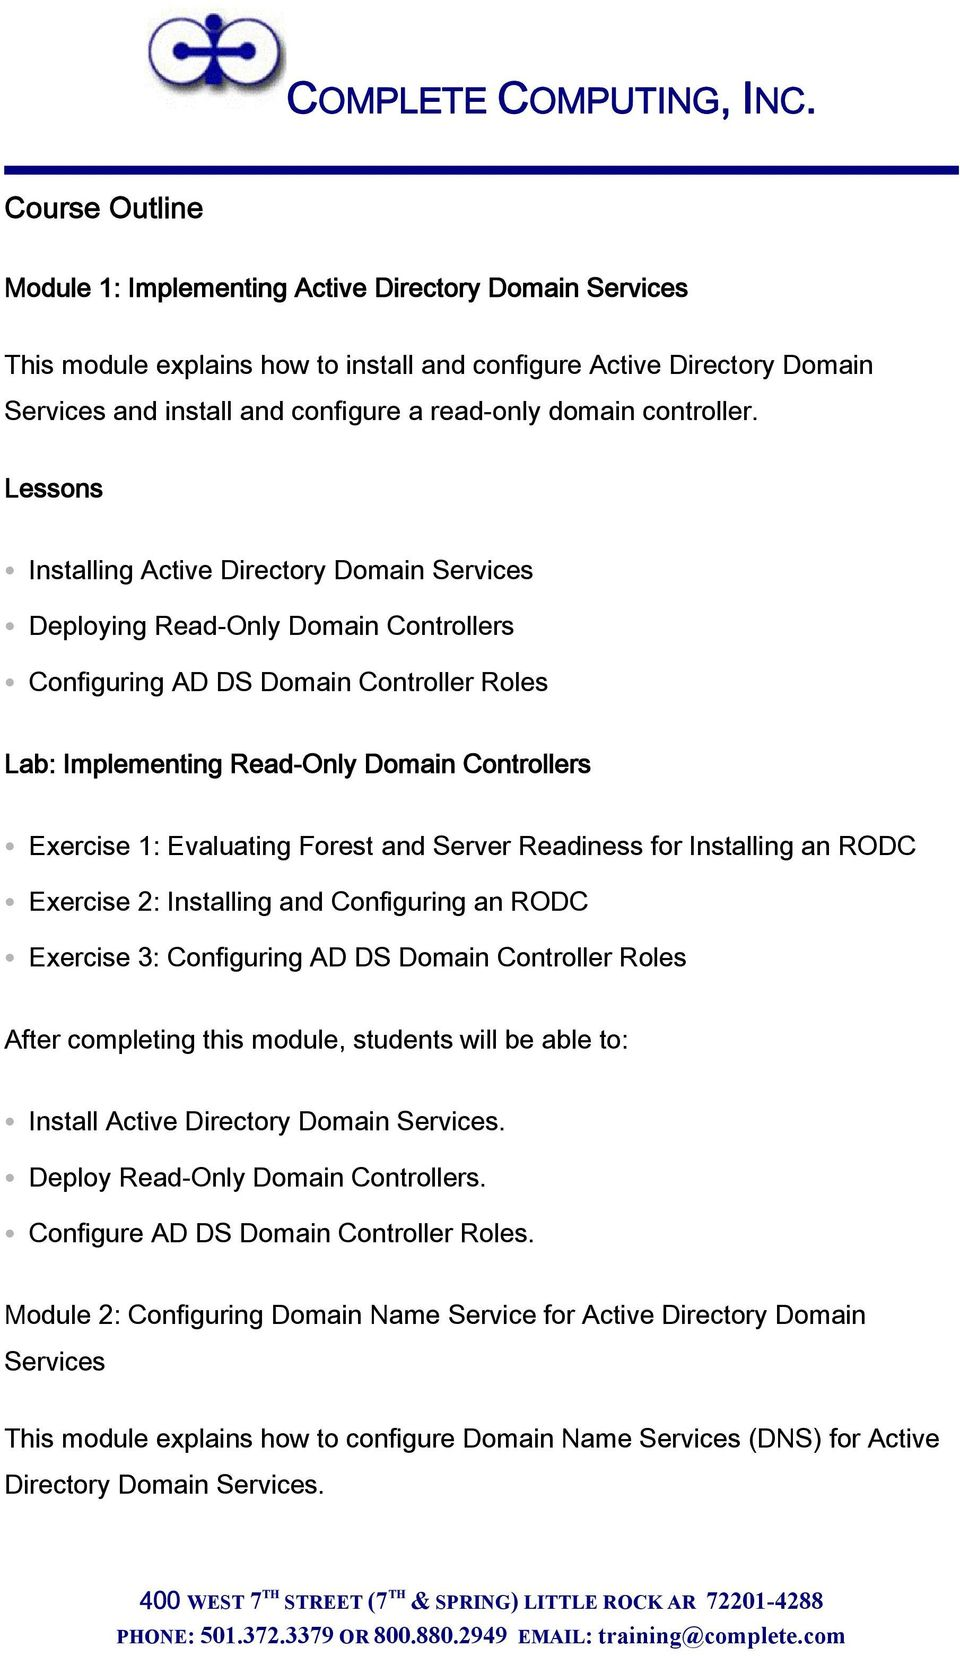 Installing Active Directory Domain Services Deploying Read-Only Domain Controllers Configuring AD DS Domain Controller Roles Lab: Implementing Read-Only Domain Controllers Exercise 1: Evaluating